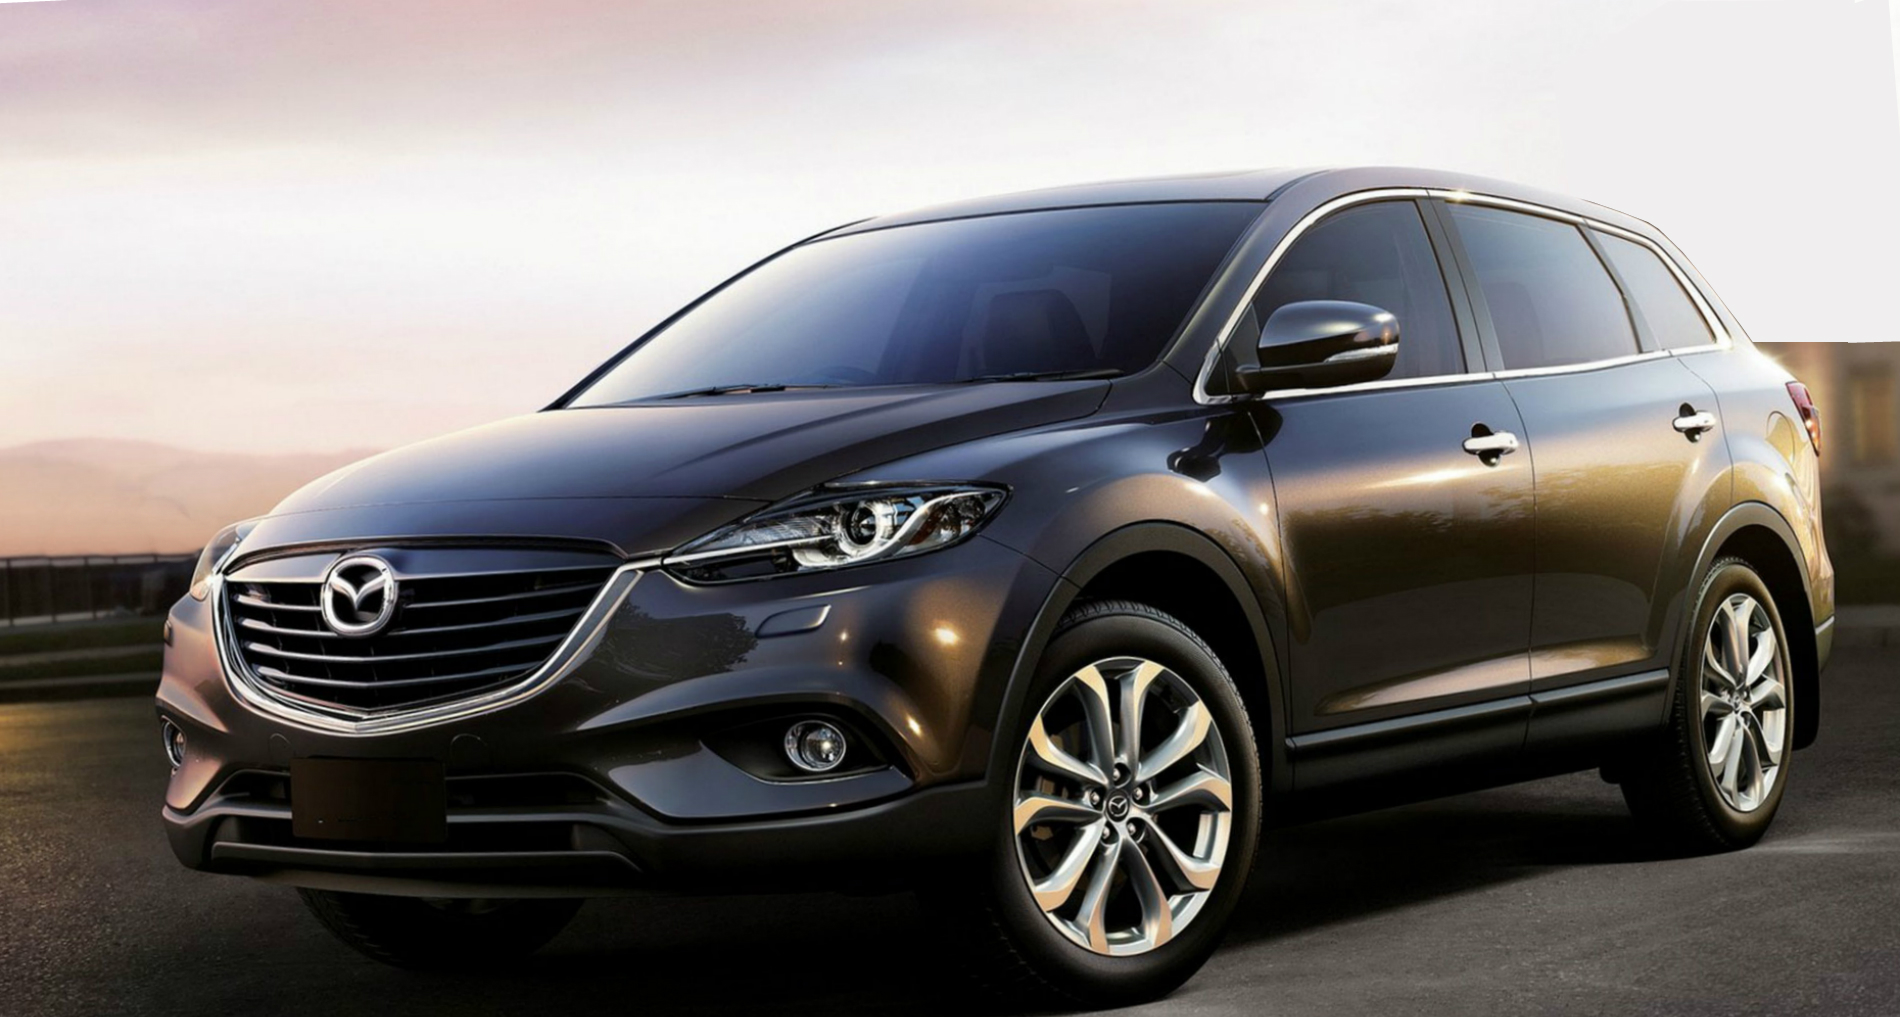 Mazda CX-9 KODO Design